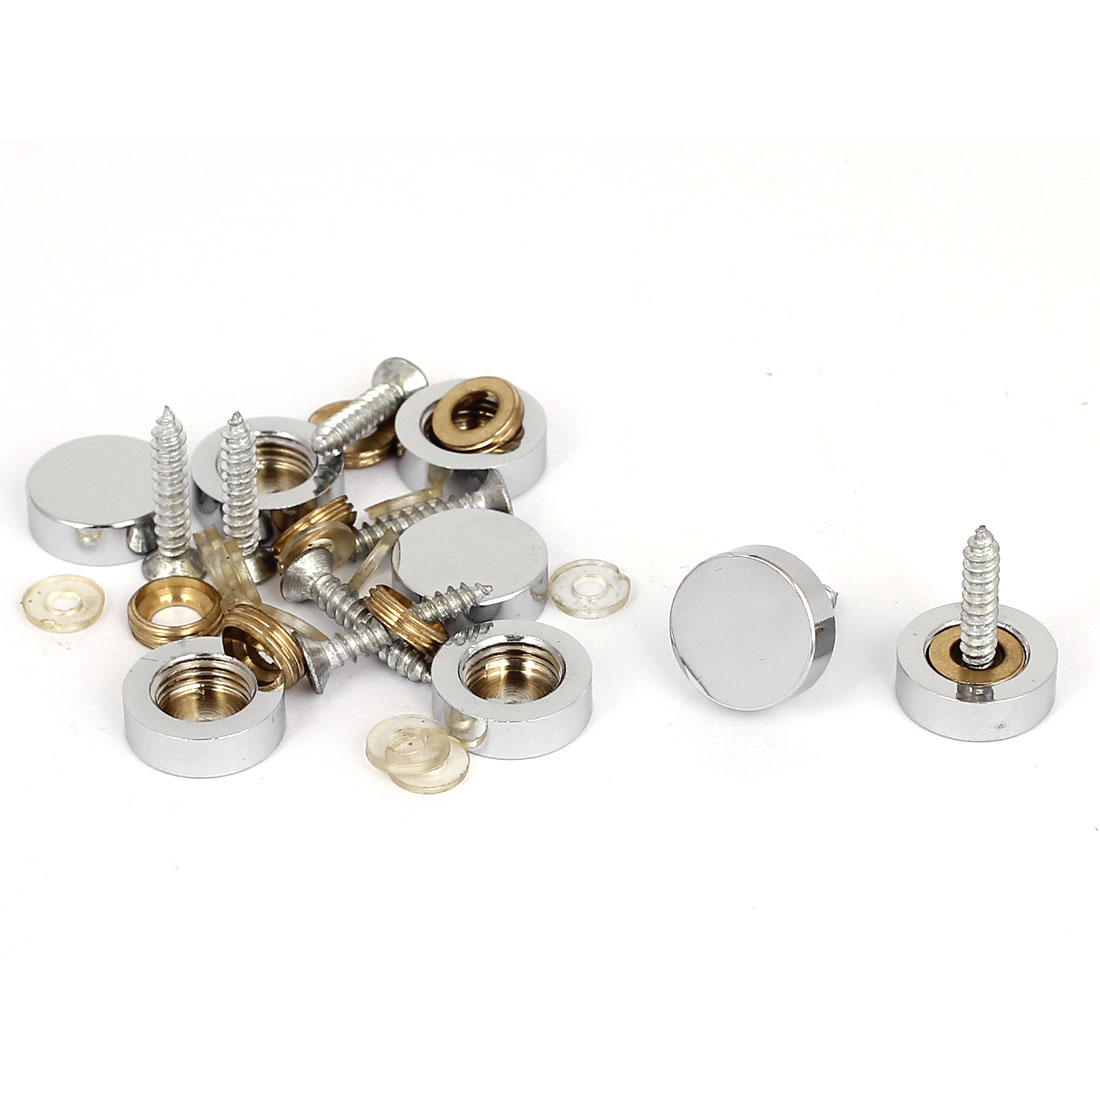 16mm Dia Advertising Glass Tea Table Decorative Metal Mirror Screw Nails 8Pcs